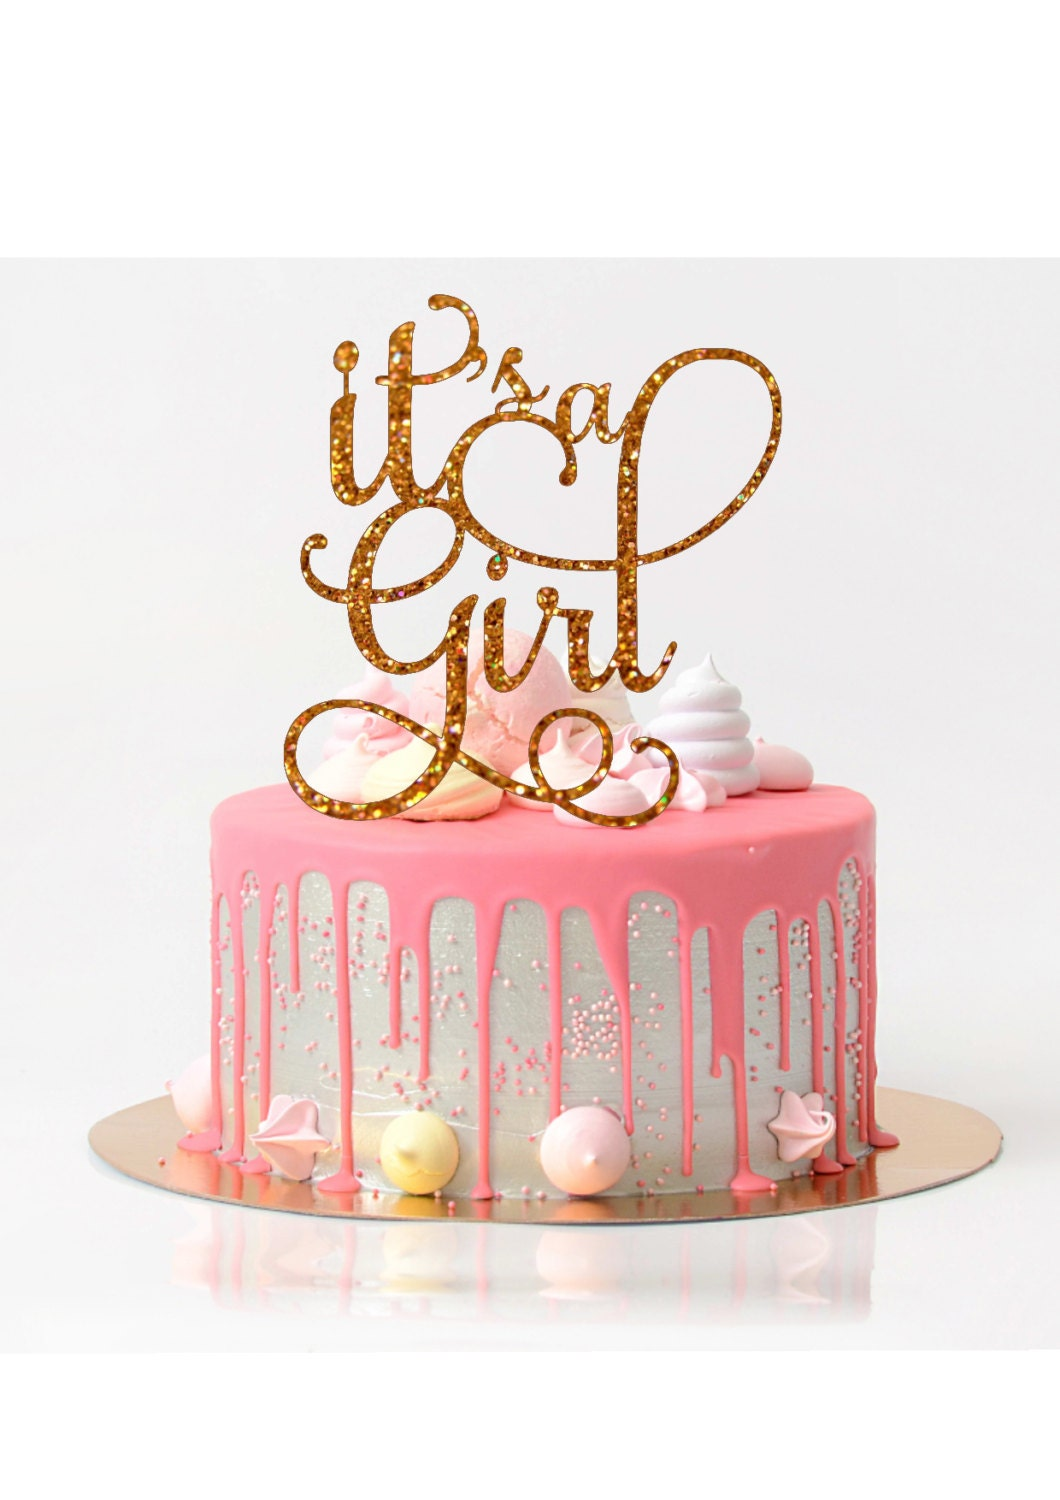 It 39 s a girl cake topper baby shower cake topper baby for It s a girl dekoration